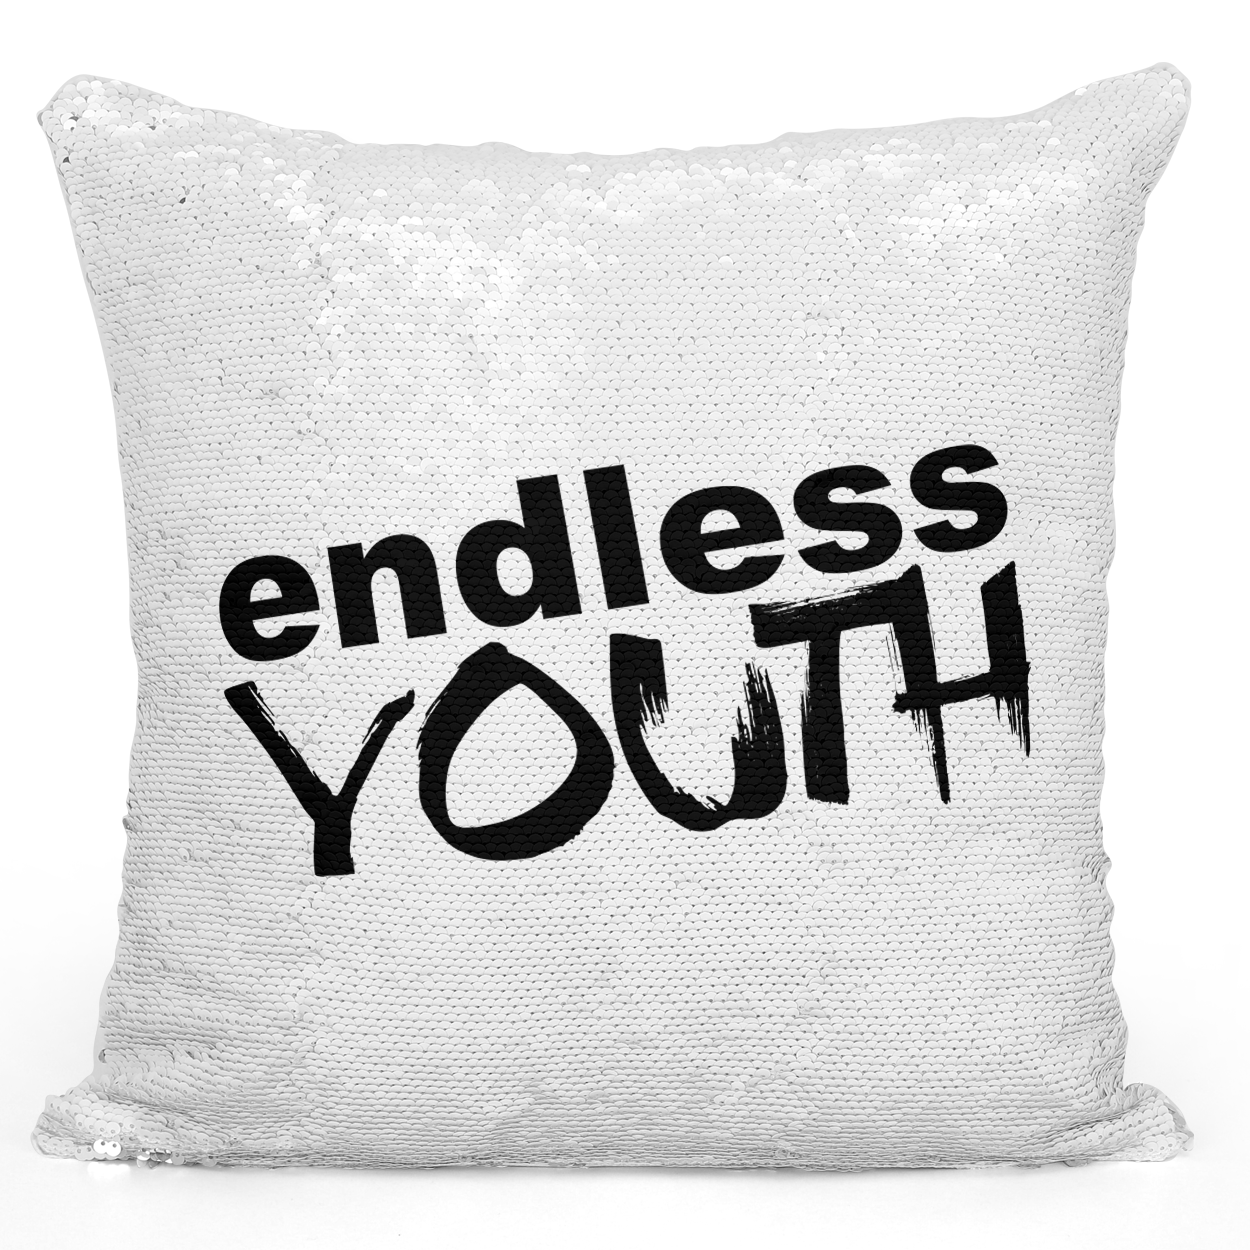 Sequin Pillow Magic Mermaid Throw Pillow Endless Youth Pillow - Durable White 16 x 16 inch Square Livingroom Sofa Couch Pillow Loud Universe